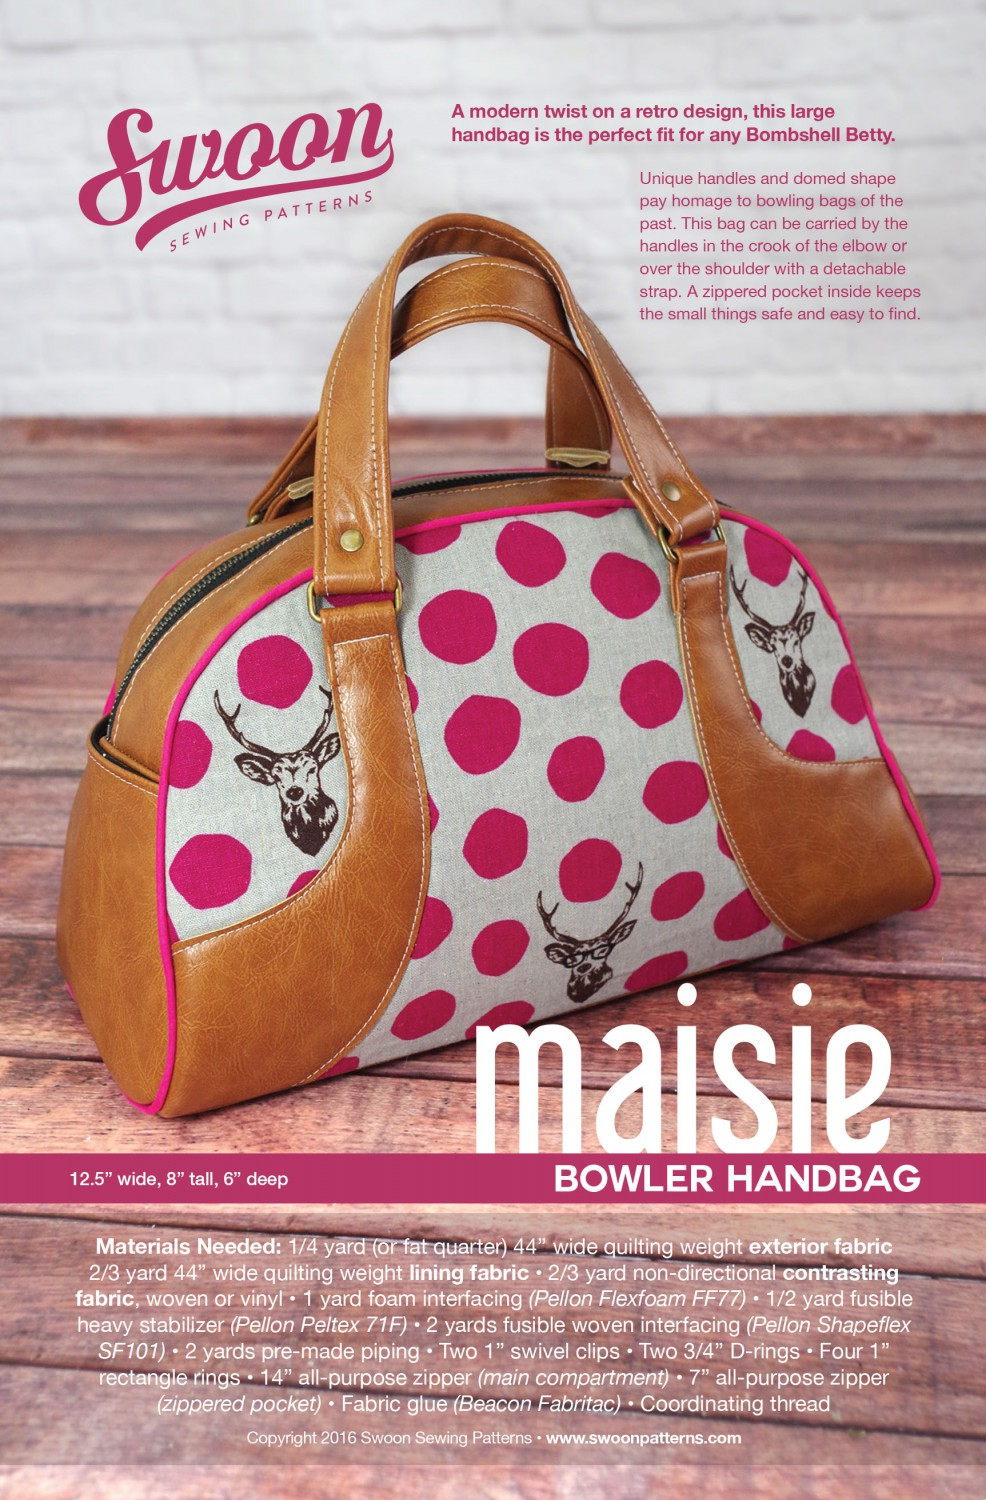 Maisie Bowler Handbag- Swoon Sewing Patterns